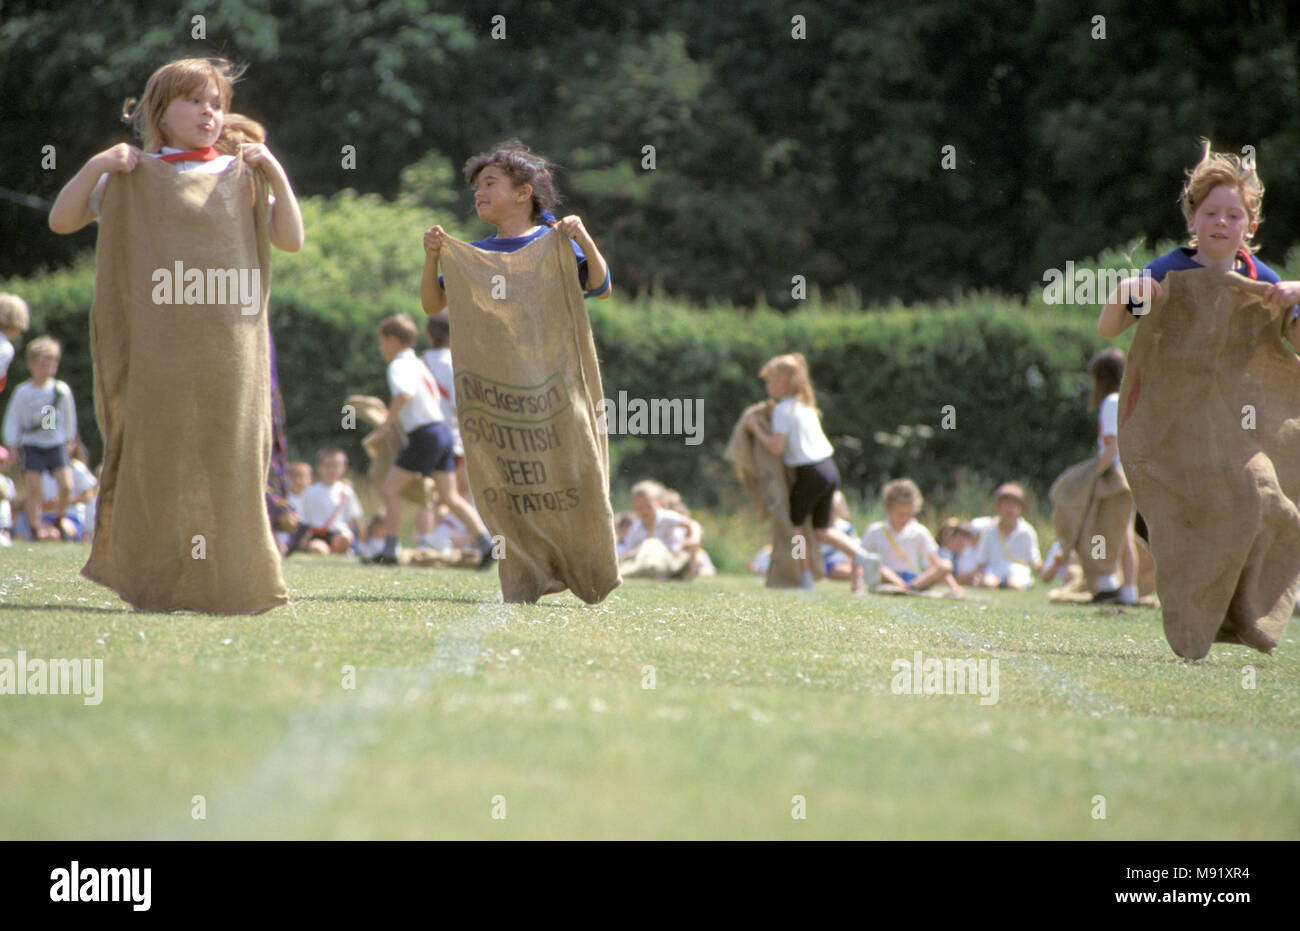 Girls competing in sack race during primary school sports day, England, UK - Stock Image